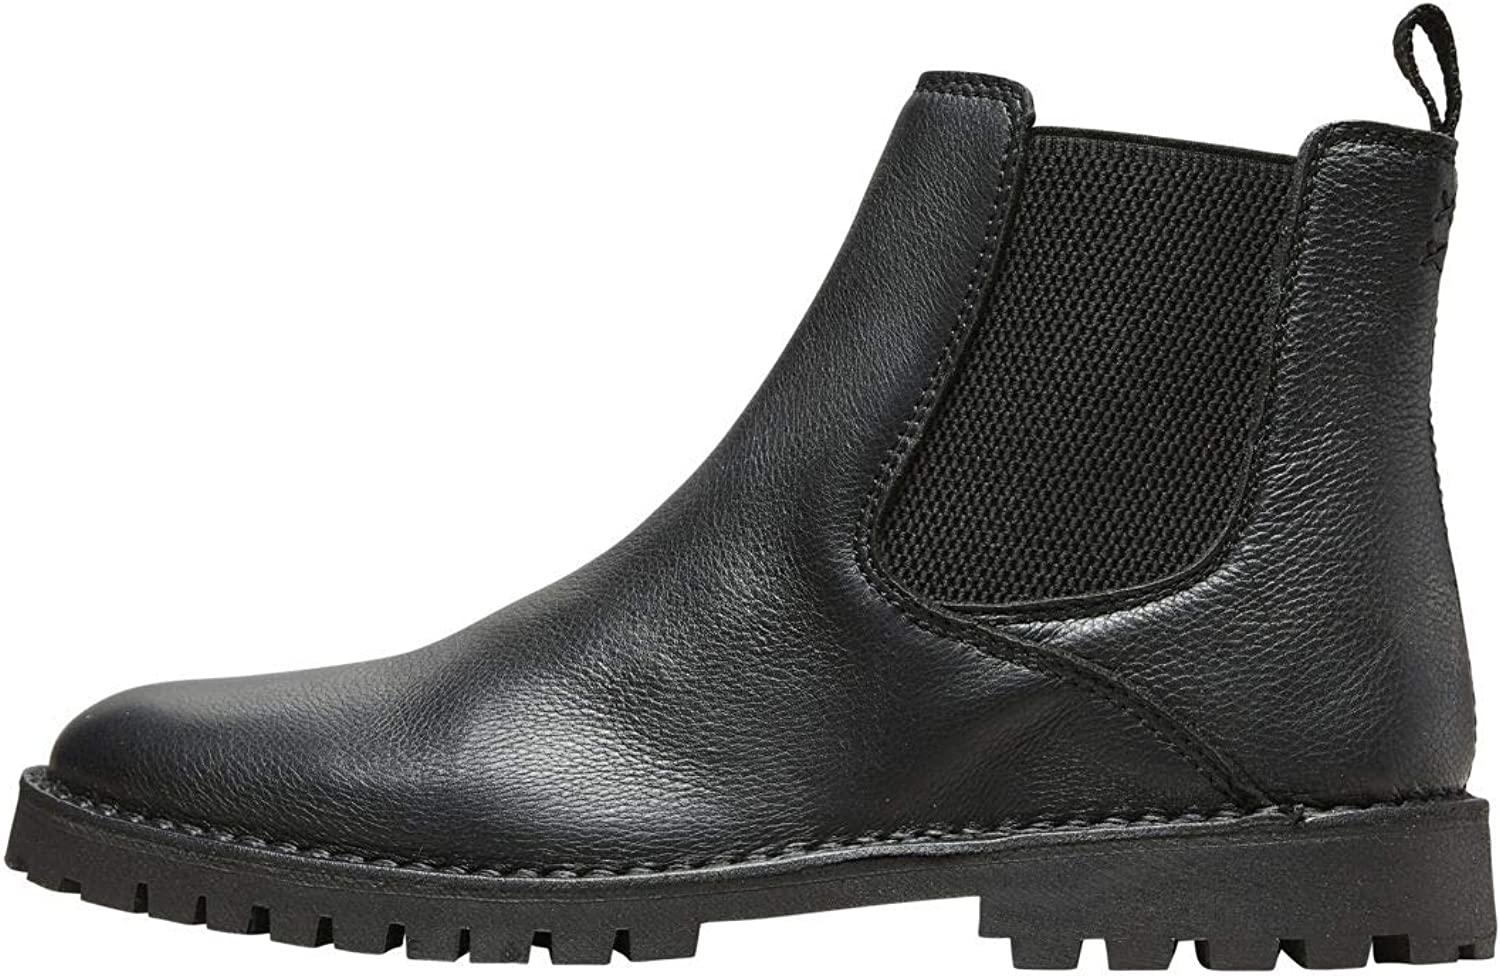 SELECTED SELECTED SELECTED HOMME SLHRICK Chelsea Leather Stiefel  b8098e